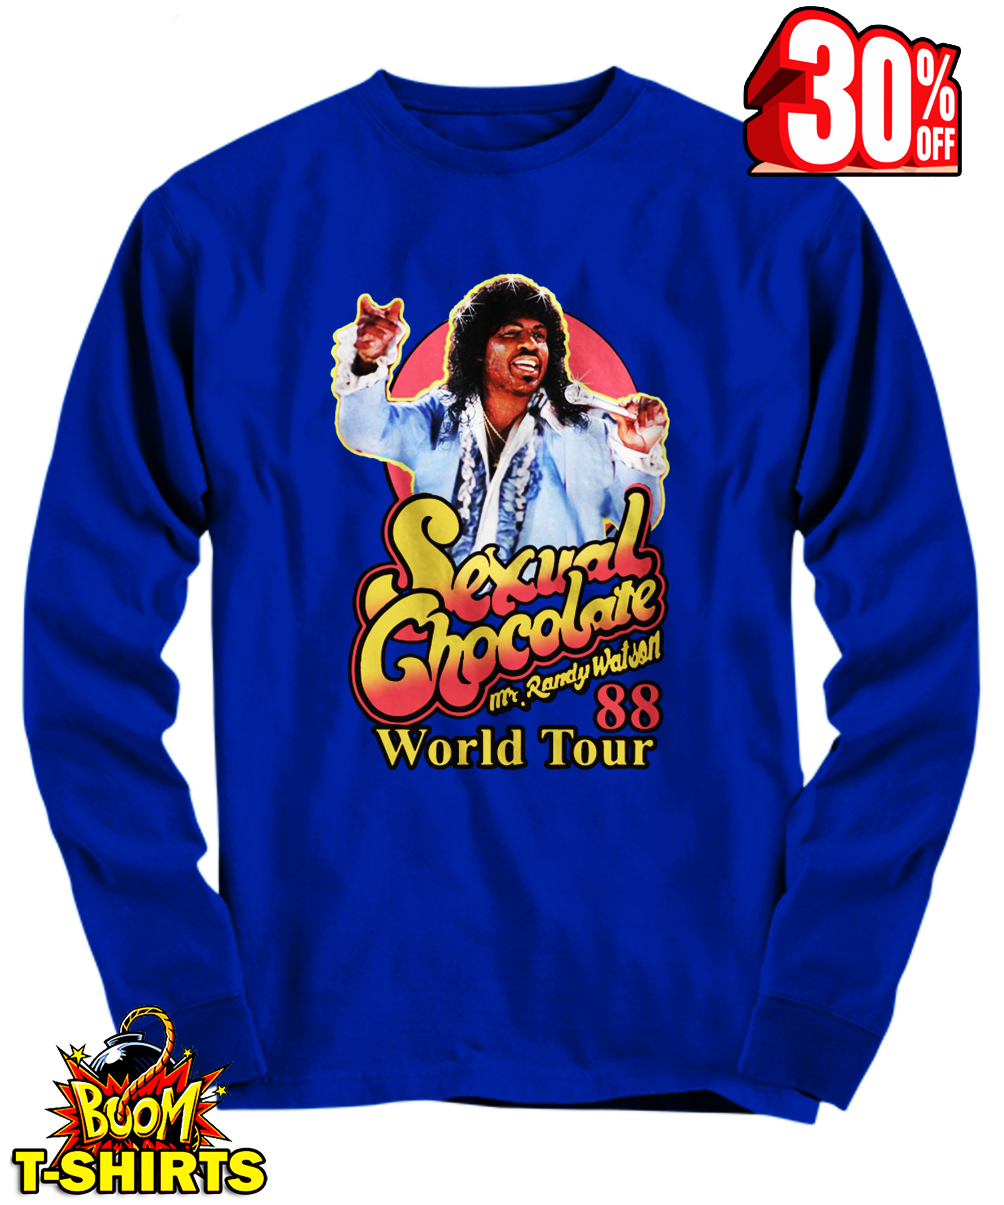 Sexual Chocolate Mr Randy Watson World Tour 88 long sleeve tee